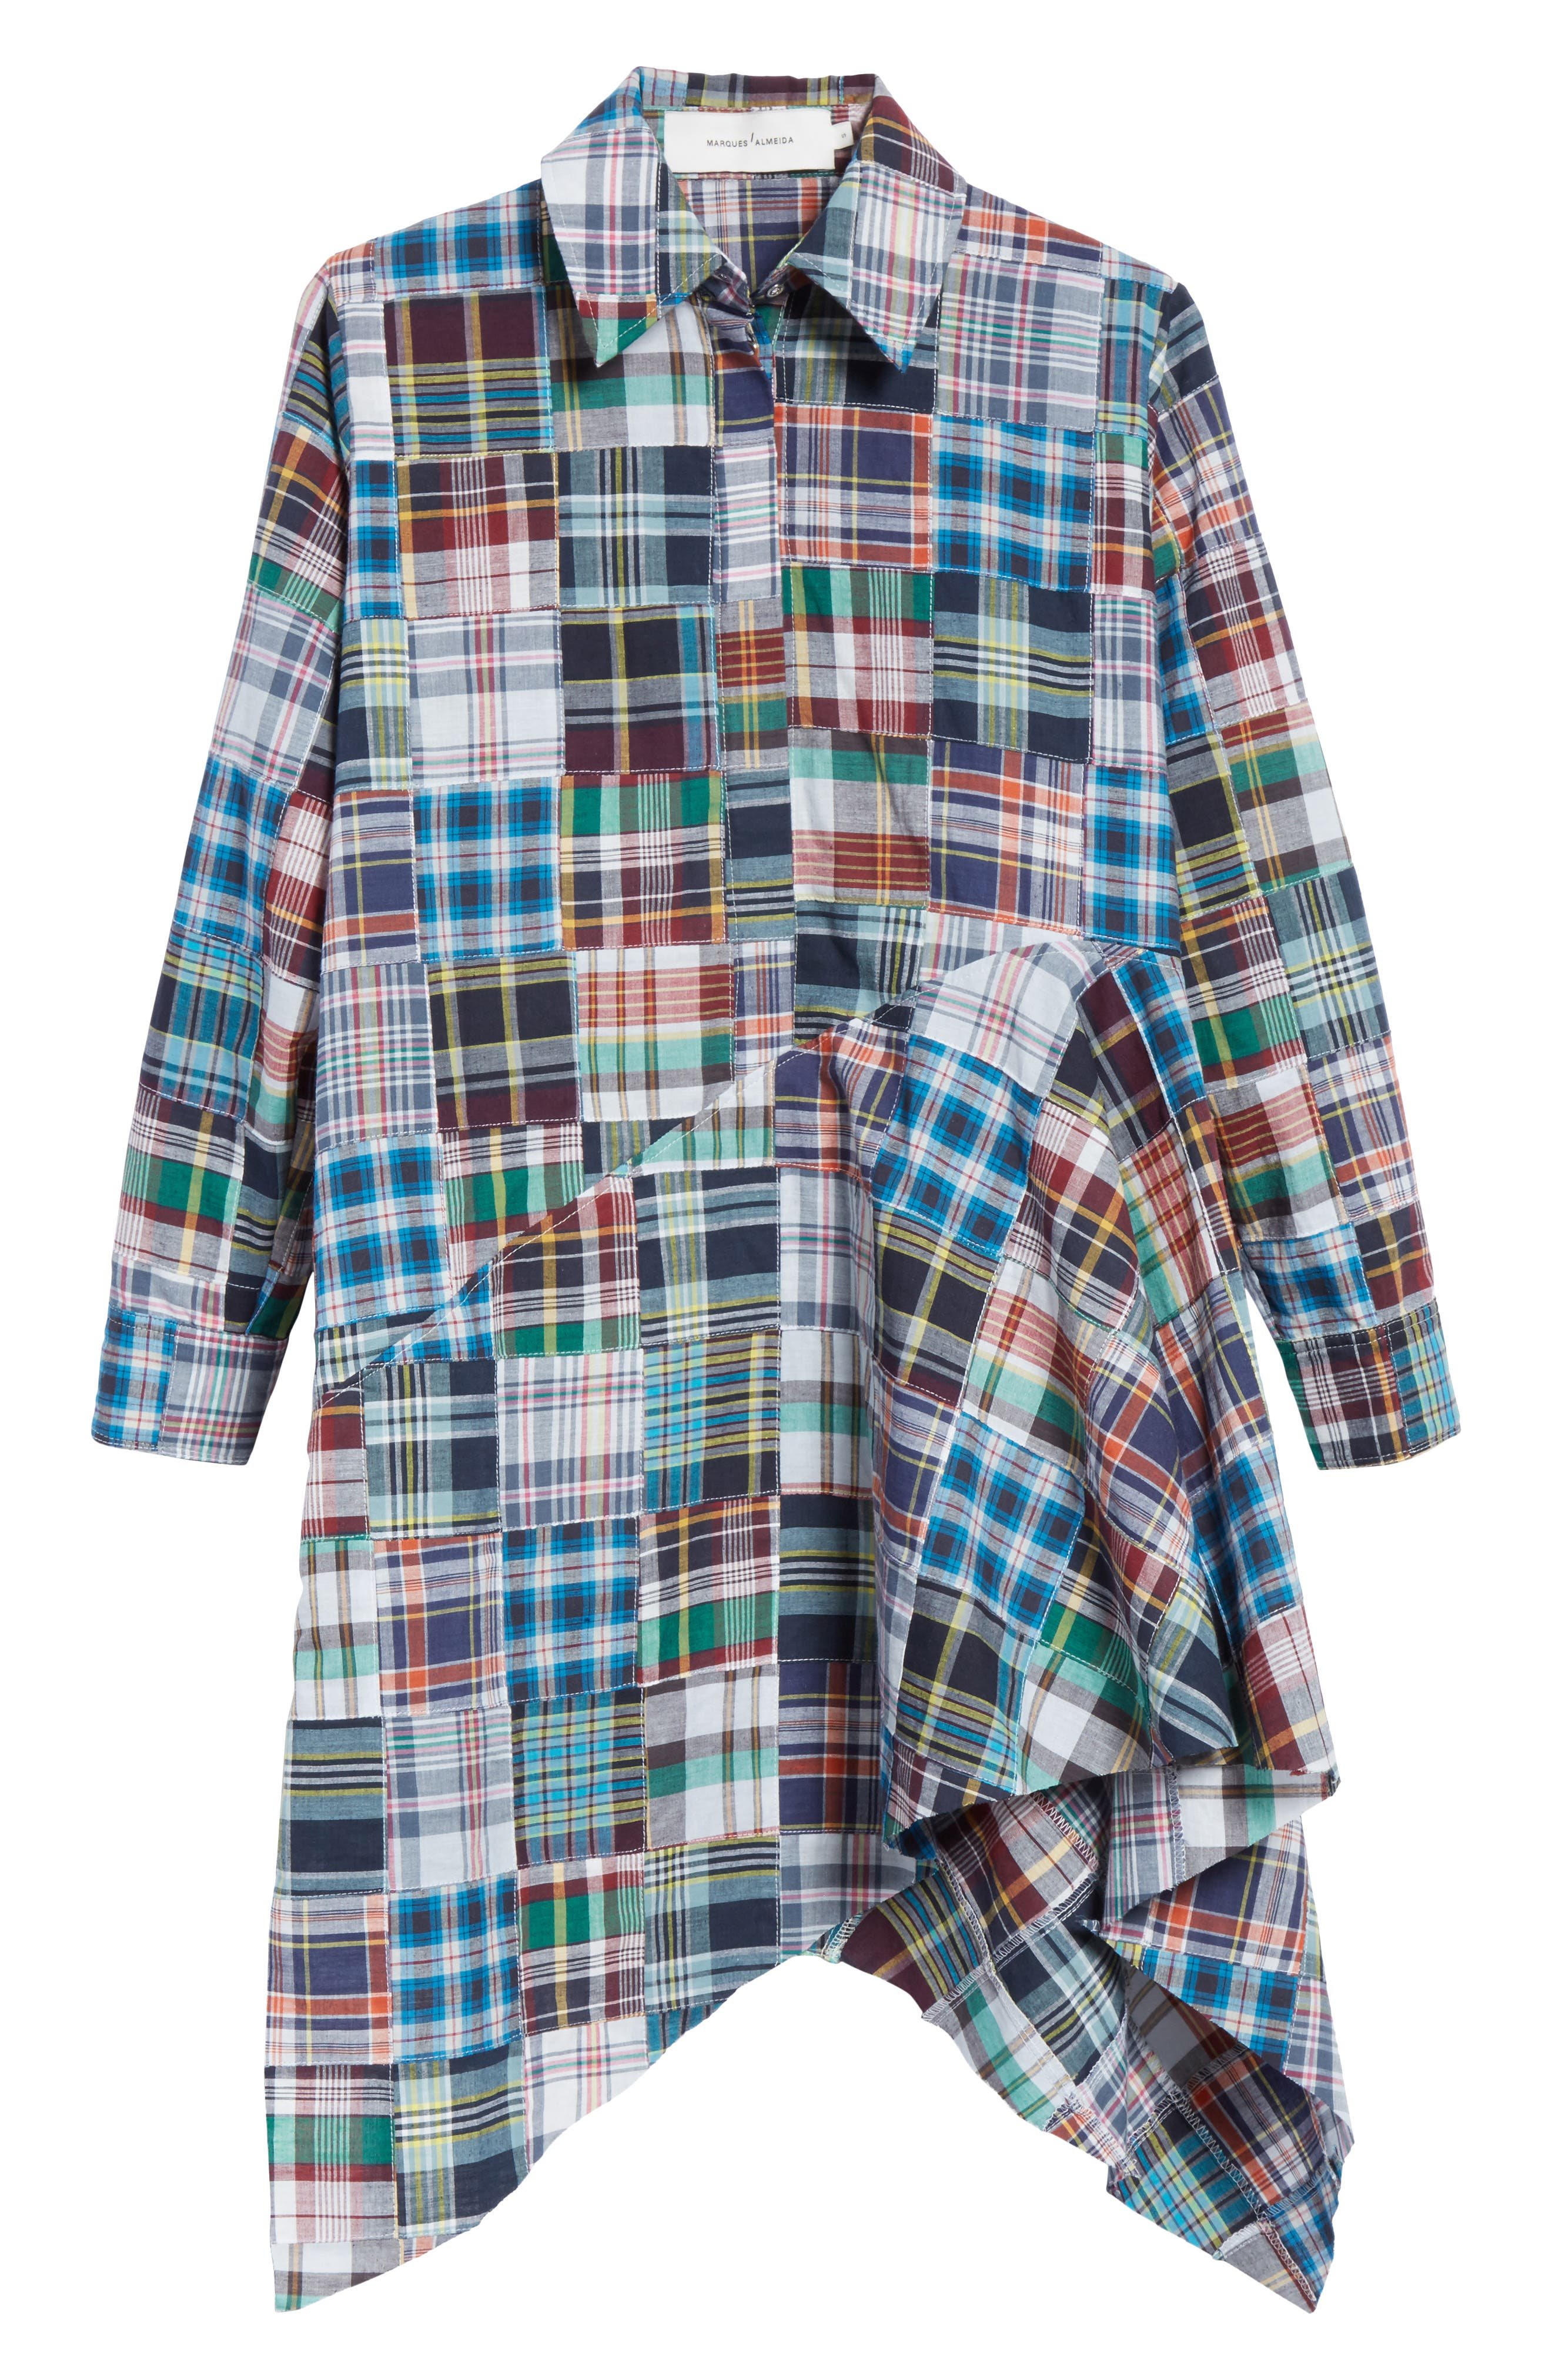 Marques'Almeida Asymmetric Patchwork Plaid Shirtdress,                             Alternate thumbnail 6, color,                             400